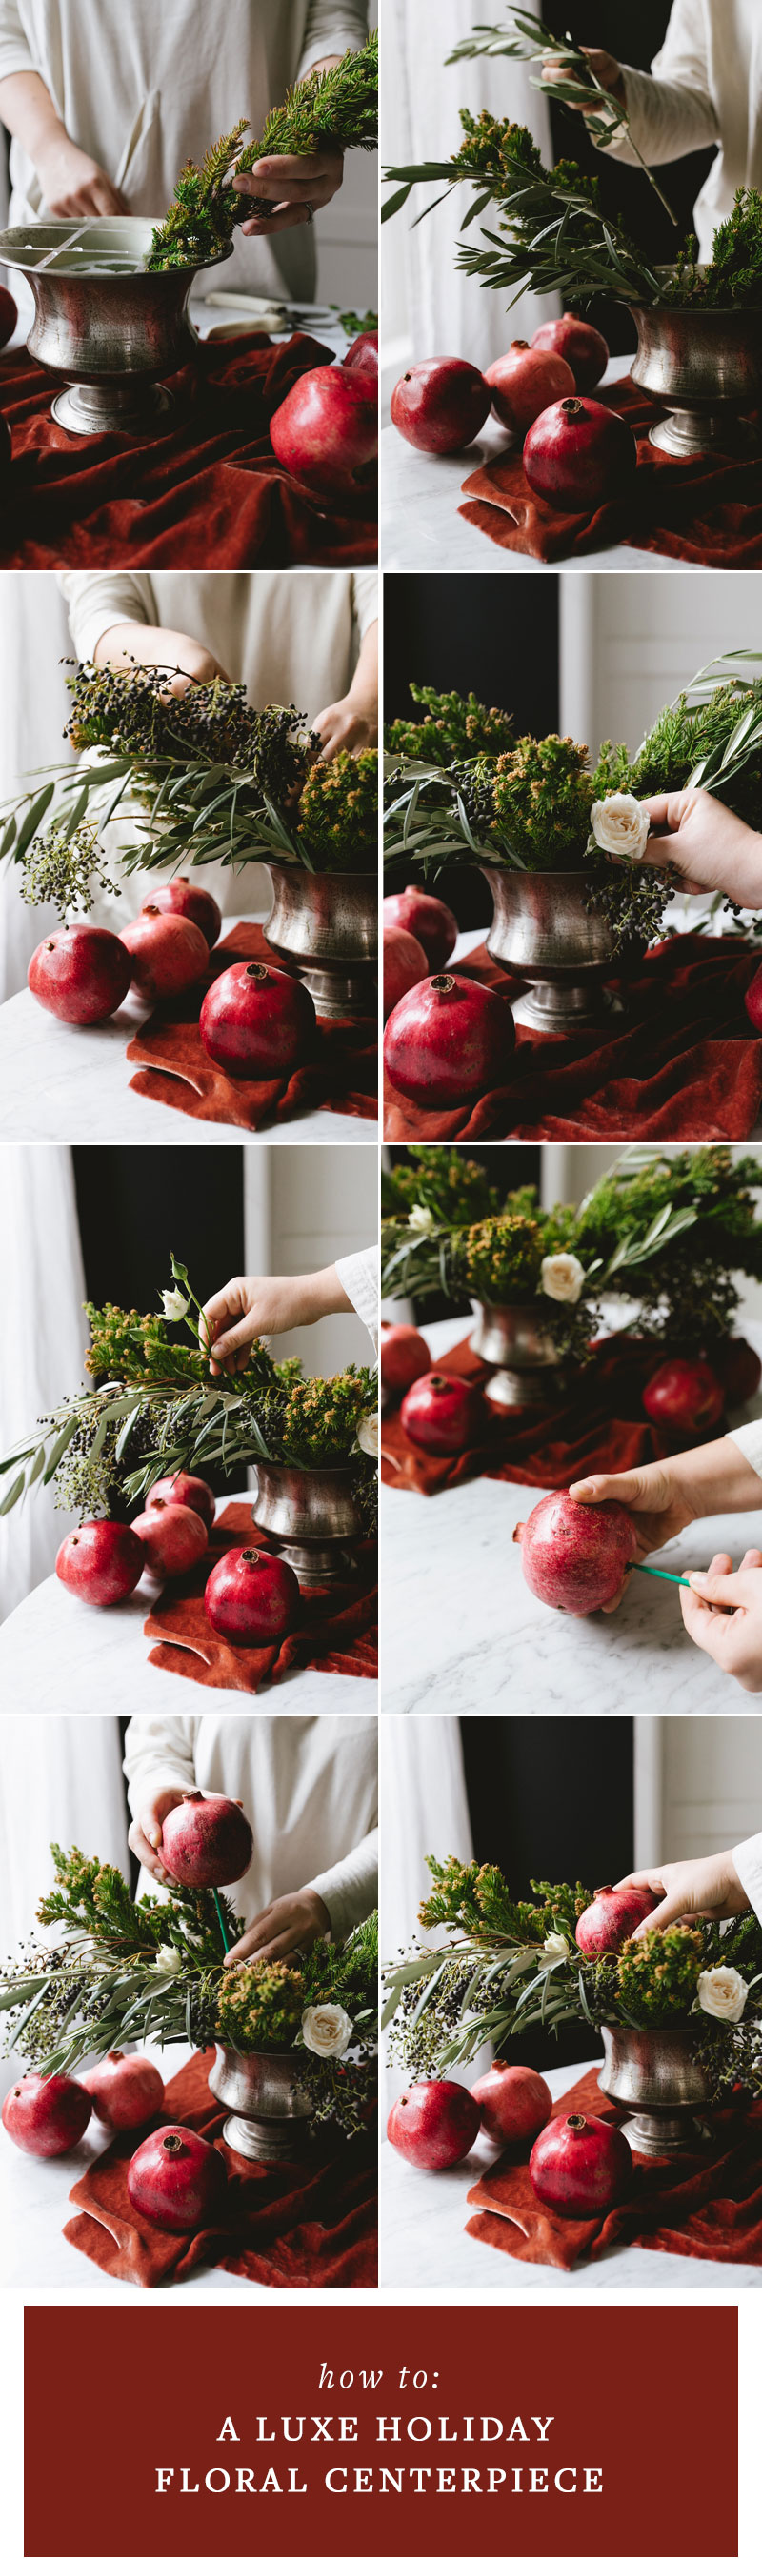 Luxe Holiday Centerpiece with Pomegranates DIY, floral arrangement tutorial for Christmas with spruce, pine greenery, olive branches, spray roses. #florals #flowers #centerpiece #christmas #christmasdecor #christmasDIY #christmasflowers